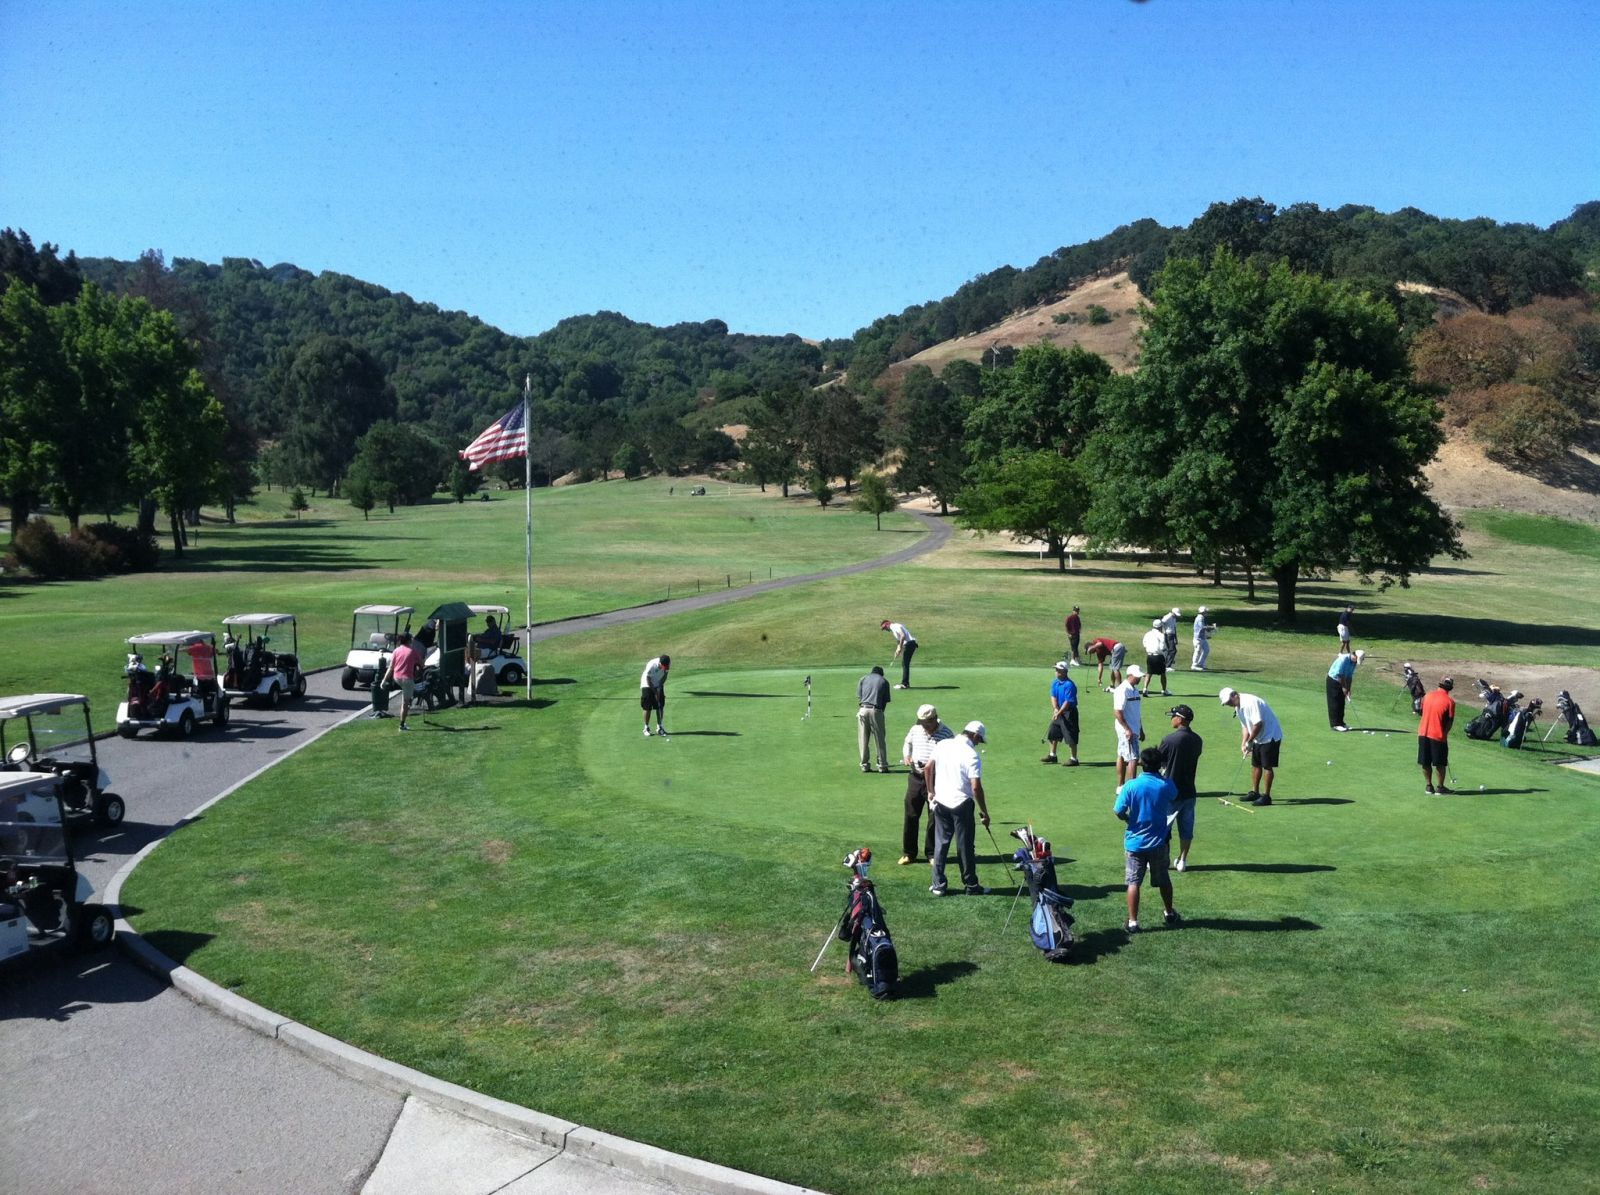 Golf facilities at Franklin Canyon Golf Course